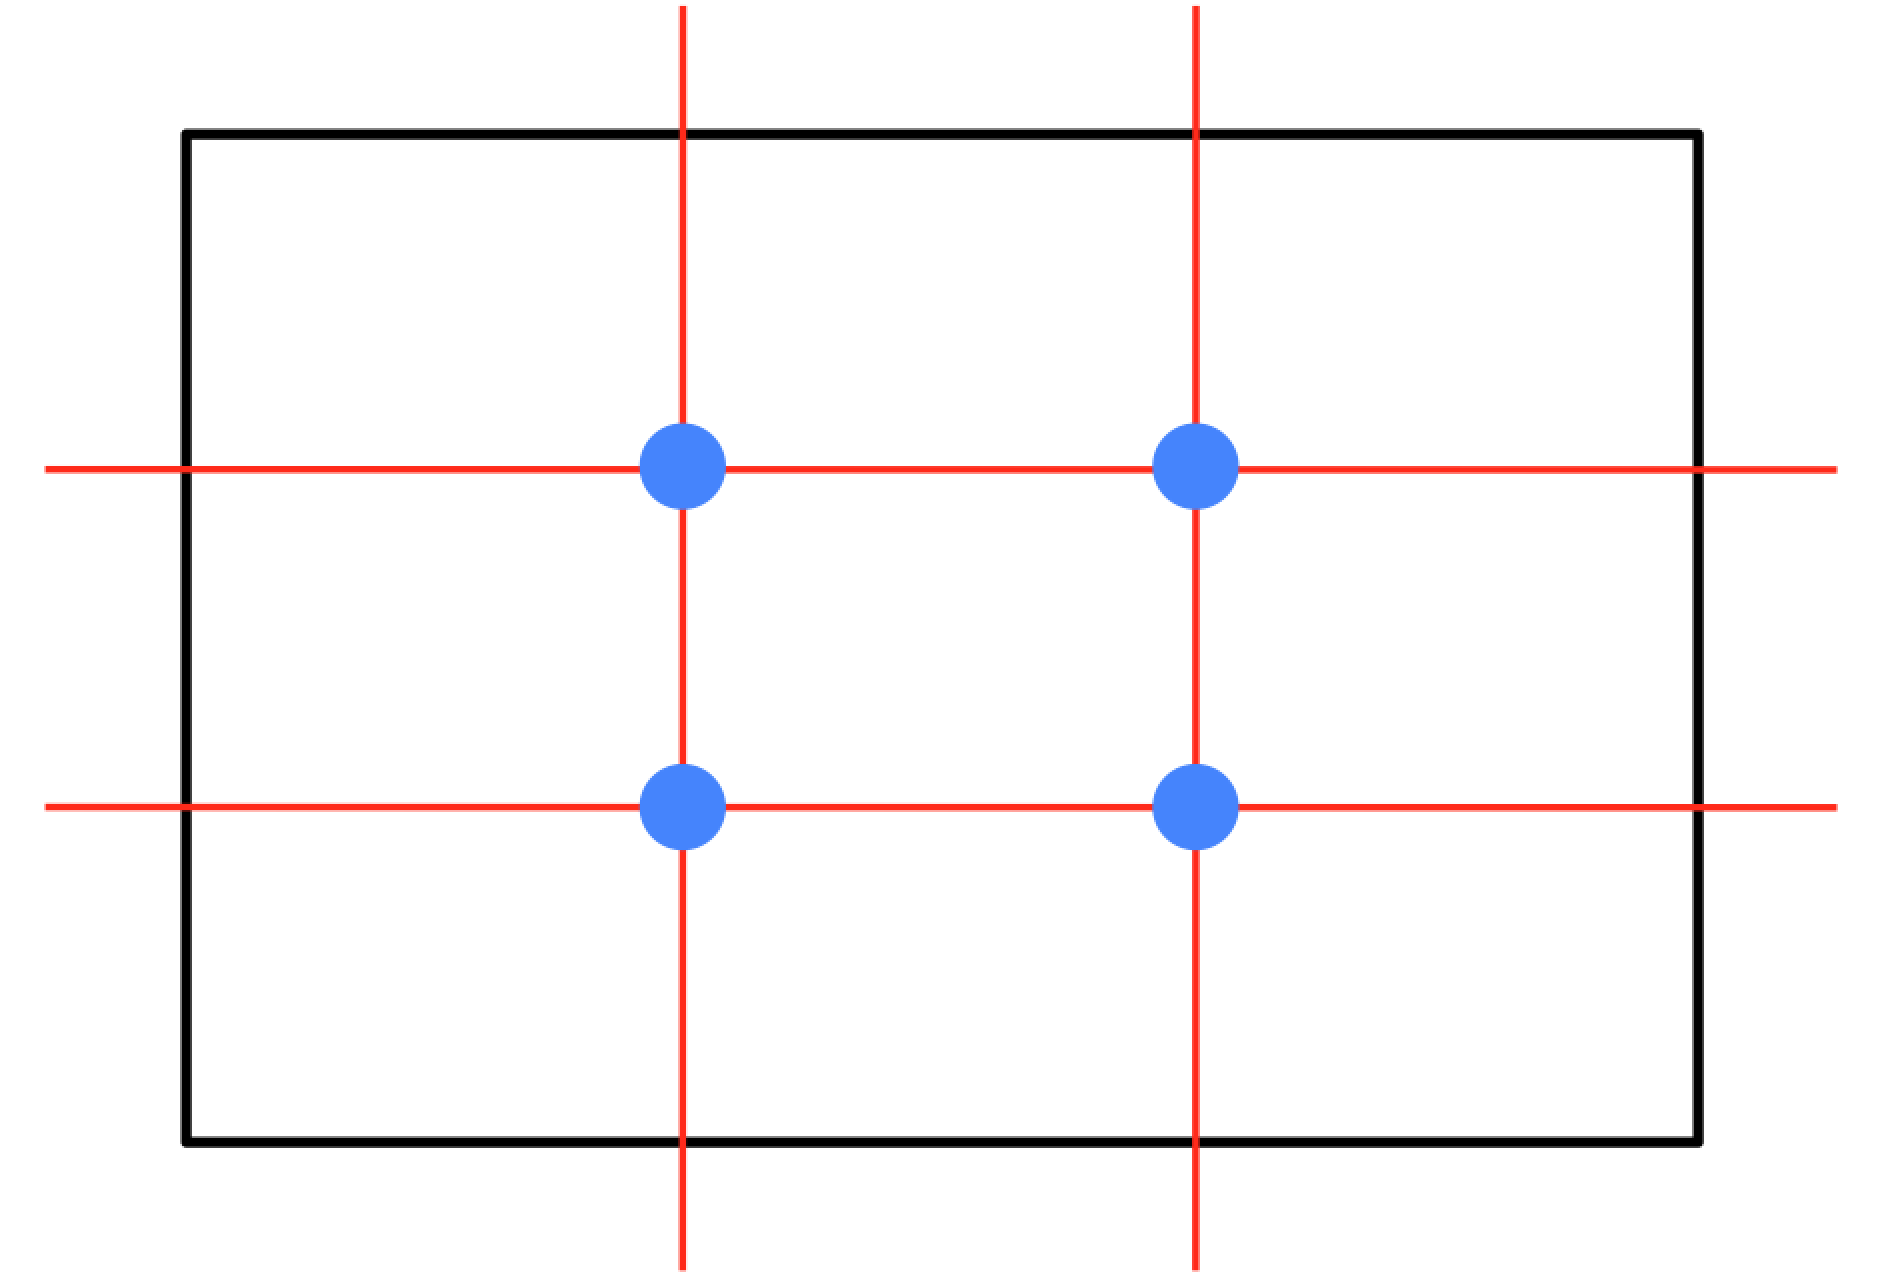 rule_of_thirds_grid_png_1190490.png